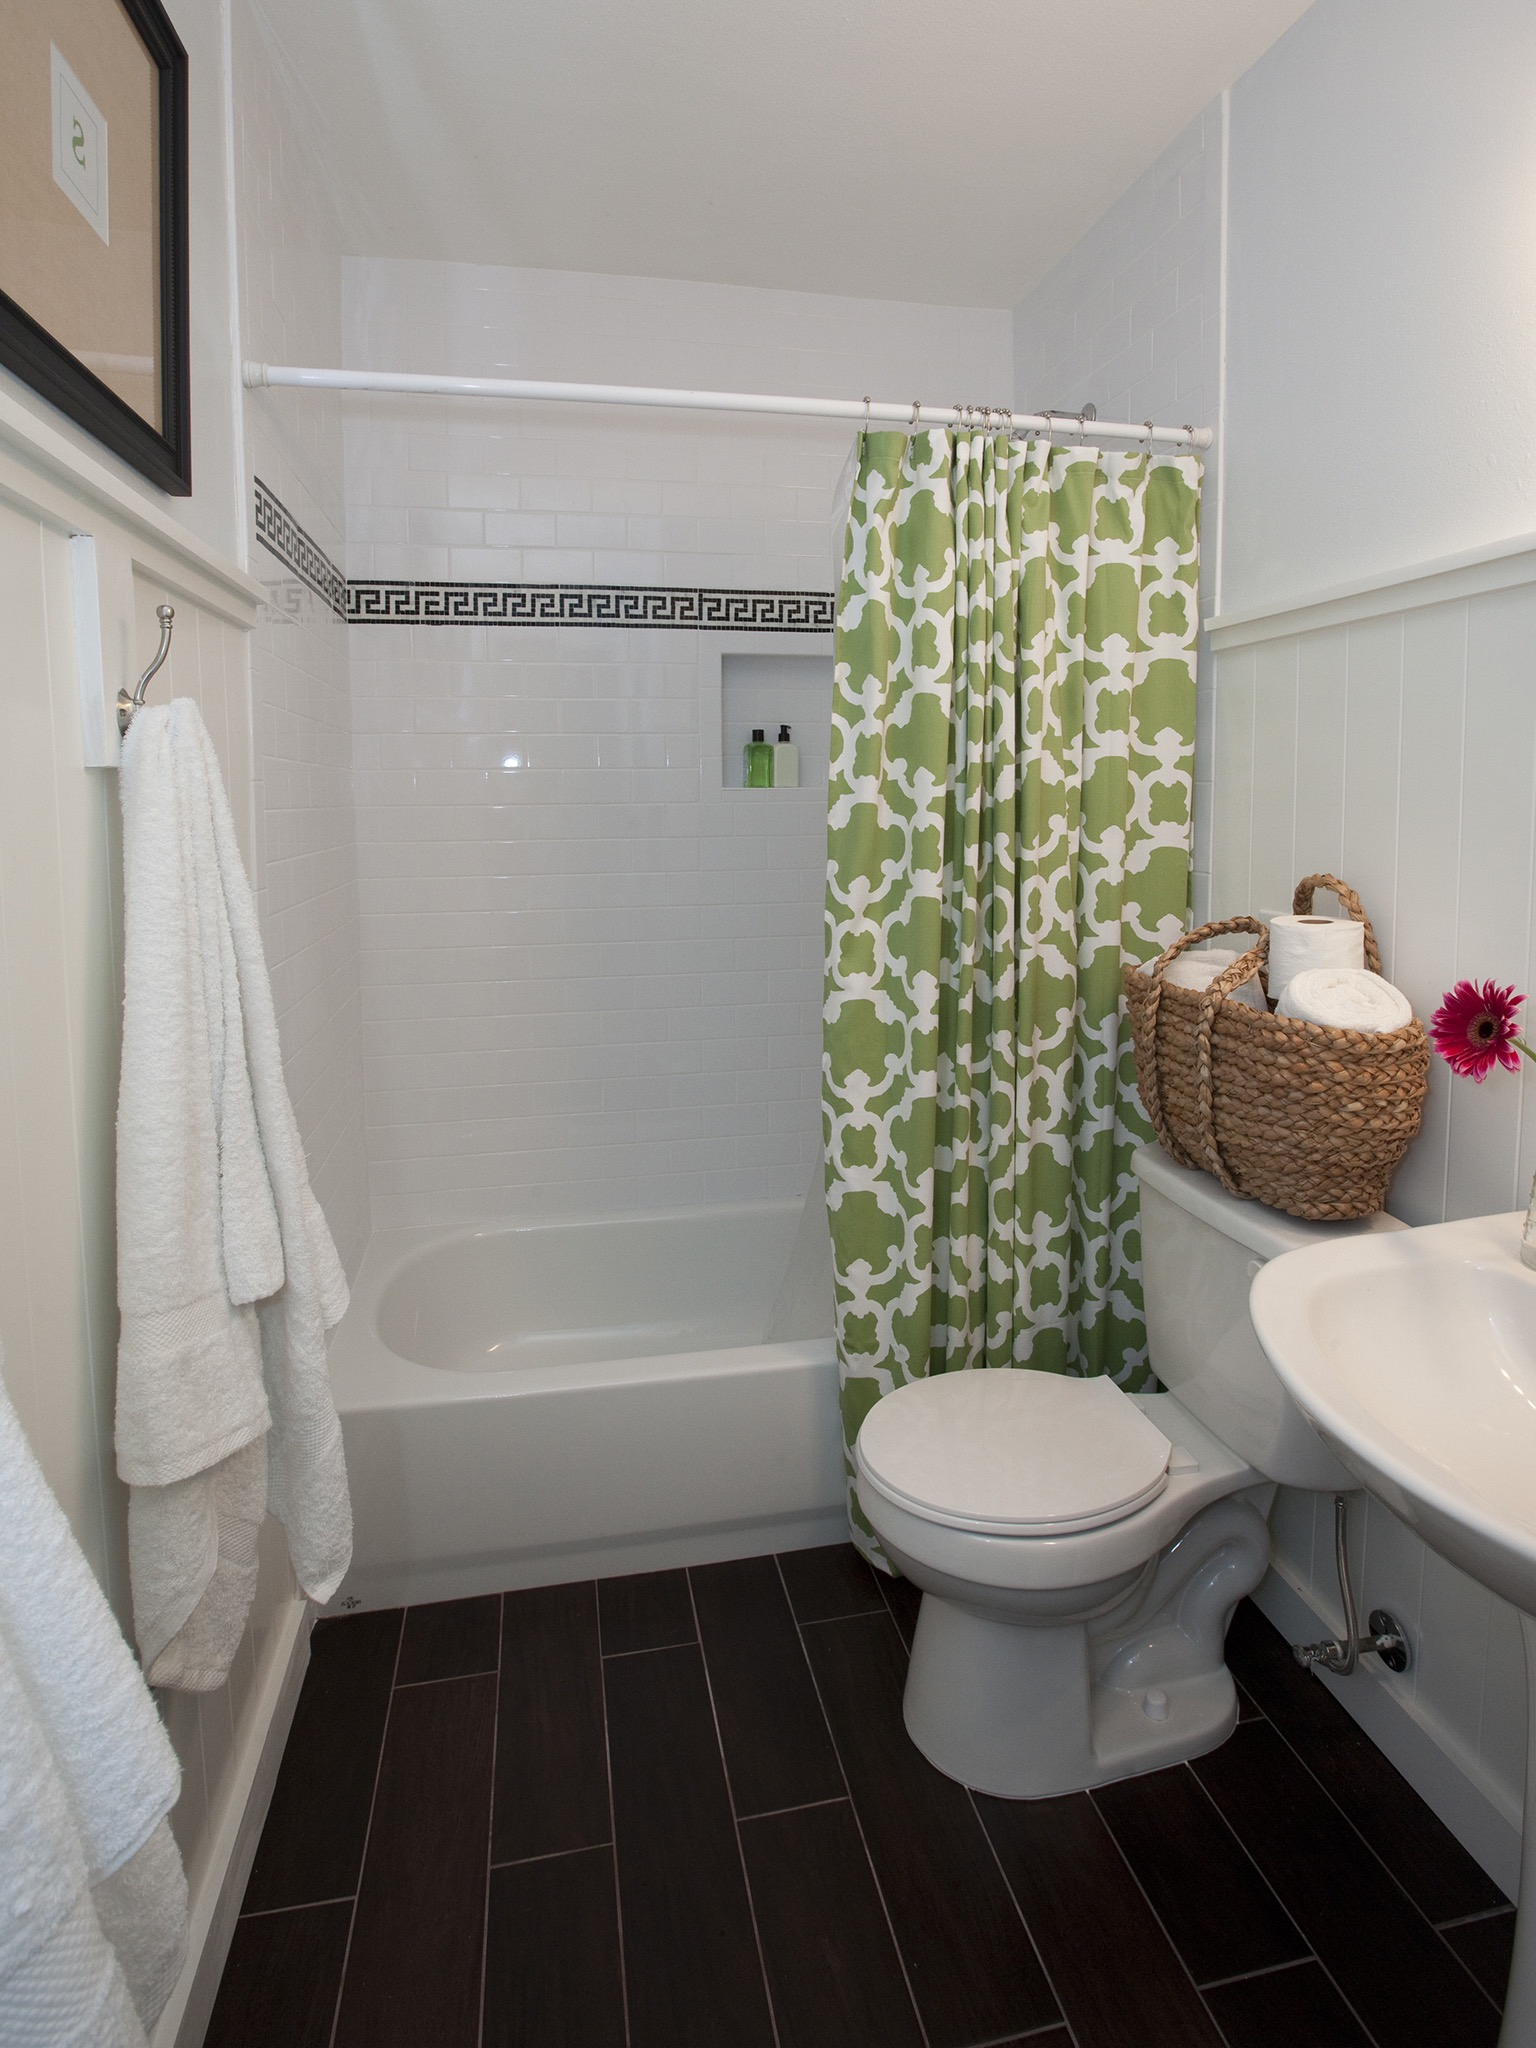 Small Bathroom With Green Shower Curtain (Image 10 of 14)